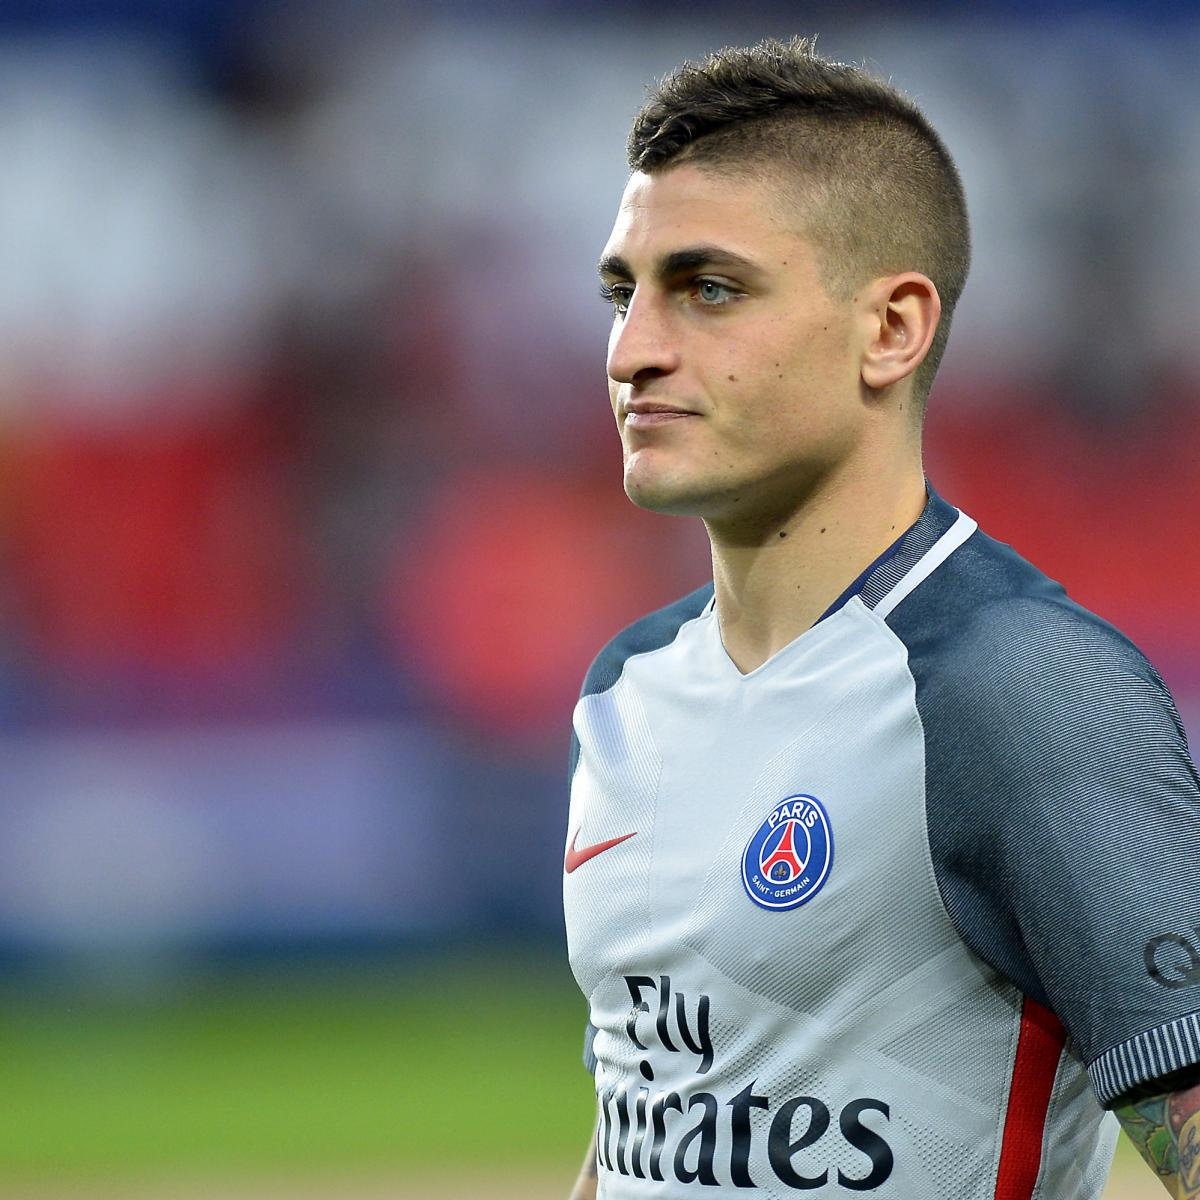 Psg Can Get Revenge On Chelsea In Champions League Last 16: PSG Transfer News: Latest Rumours On Marco Verratti Amid